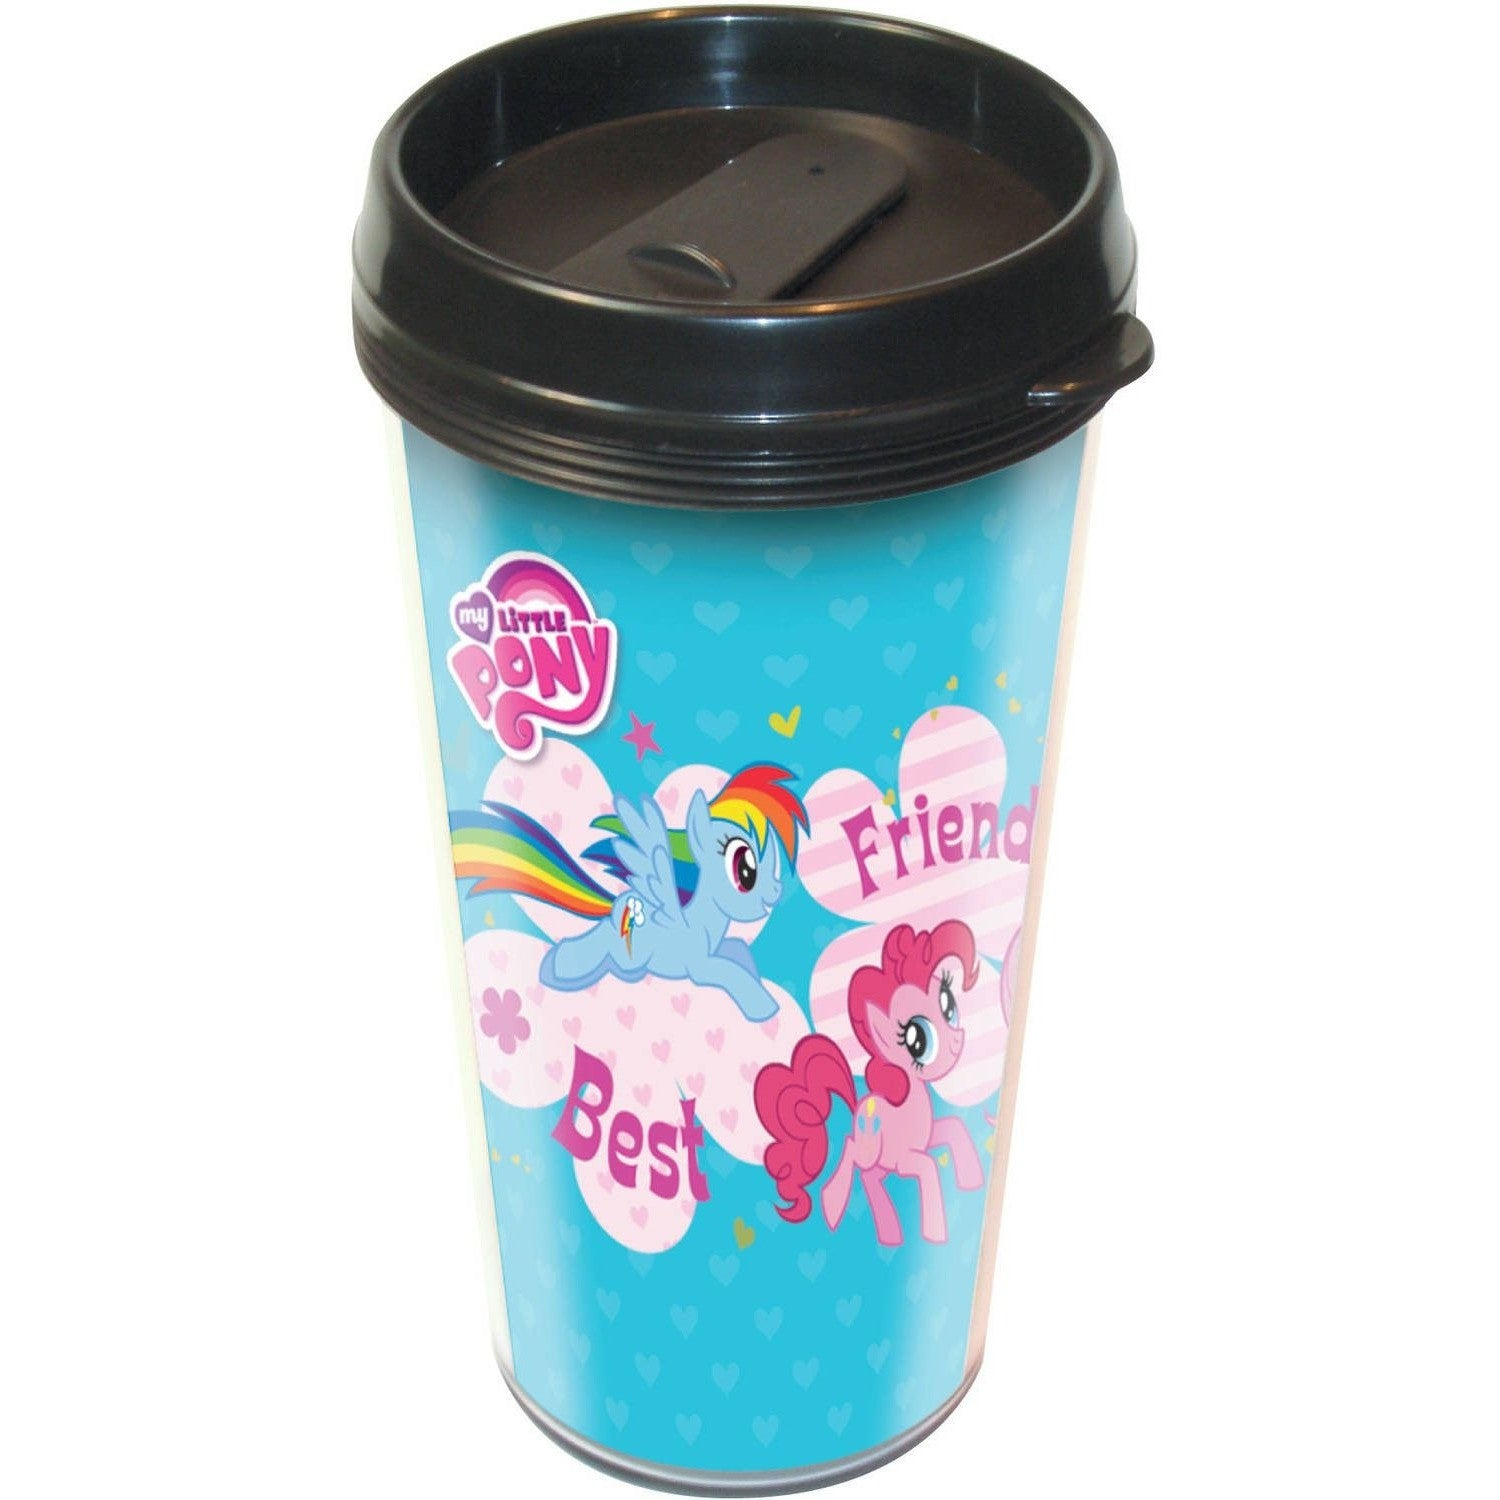 My Little Pony Best Friends Forever Plastic Travel Mug Uncanny!